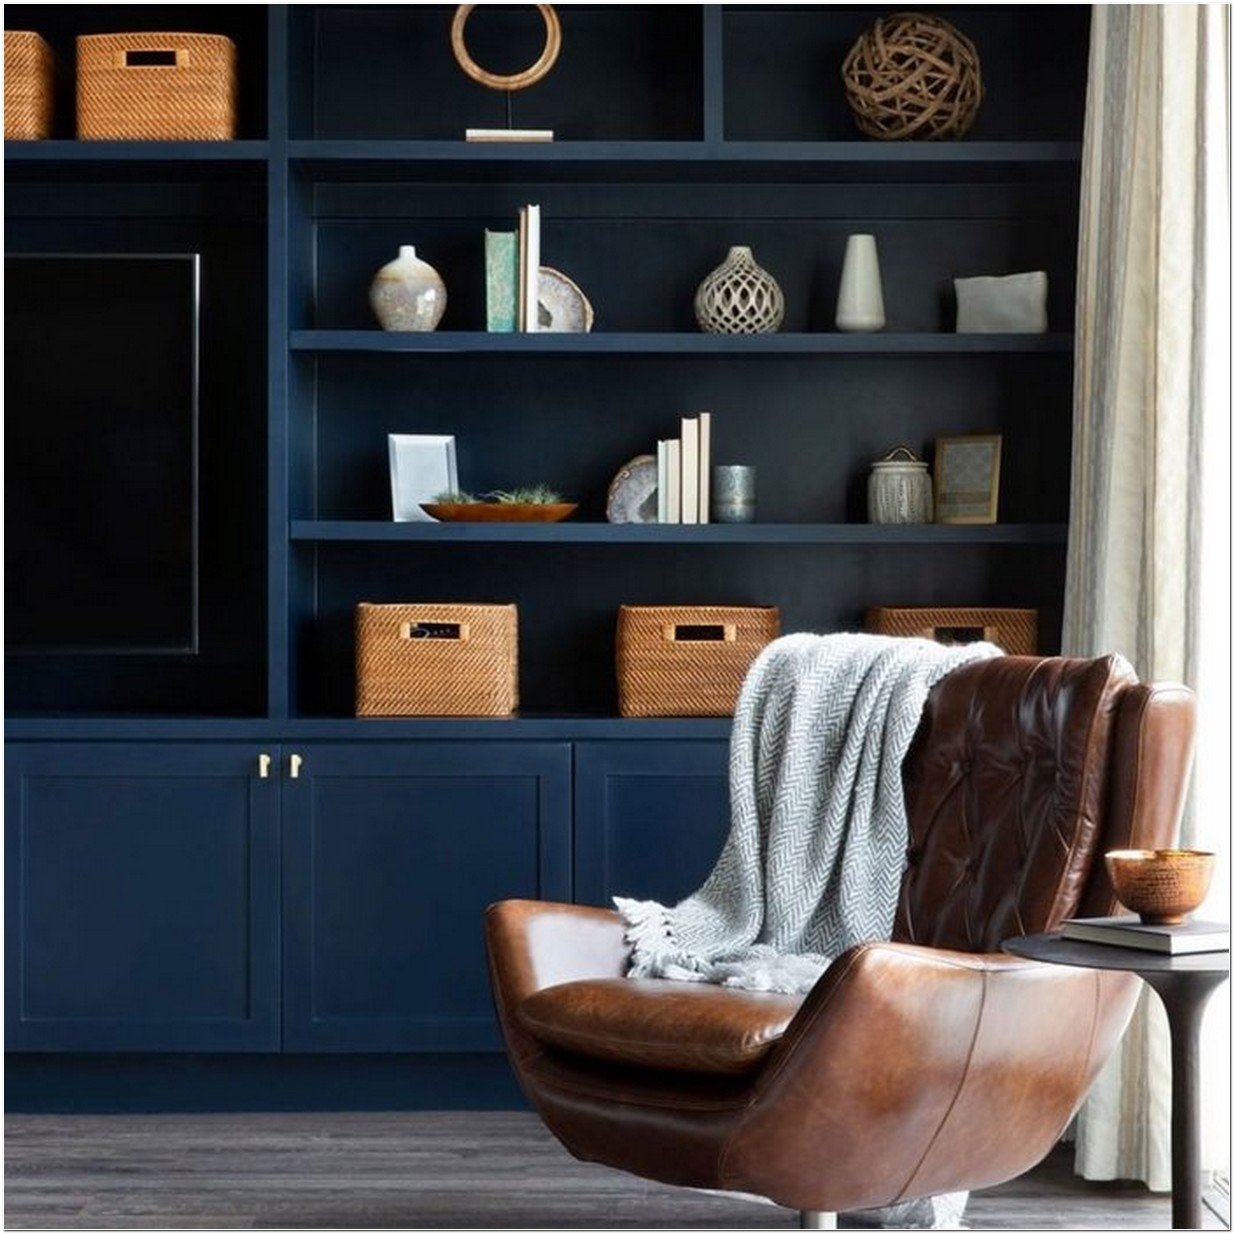 10 Best Living Room Shelving Arrangements That Will Enhance The Appearance Of Your Home